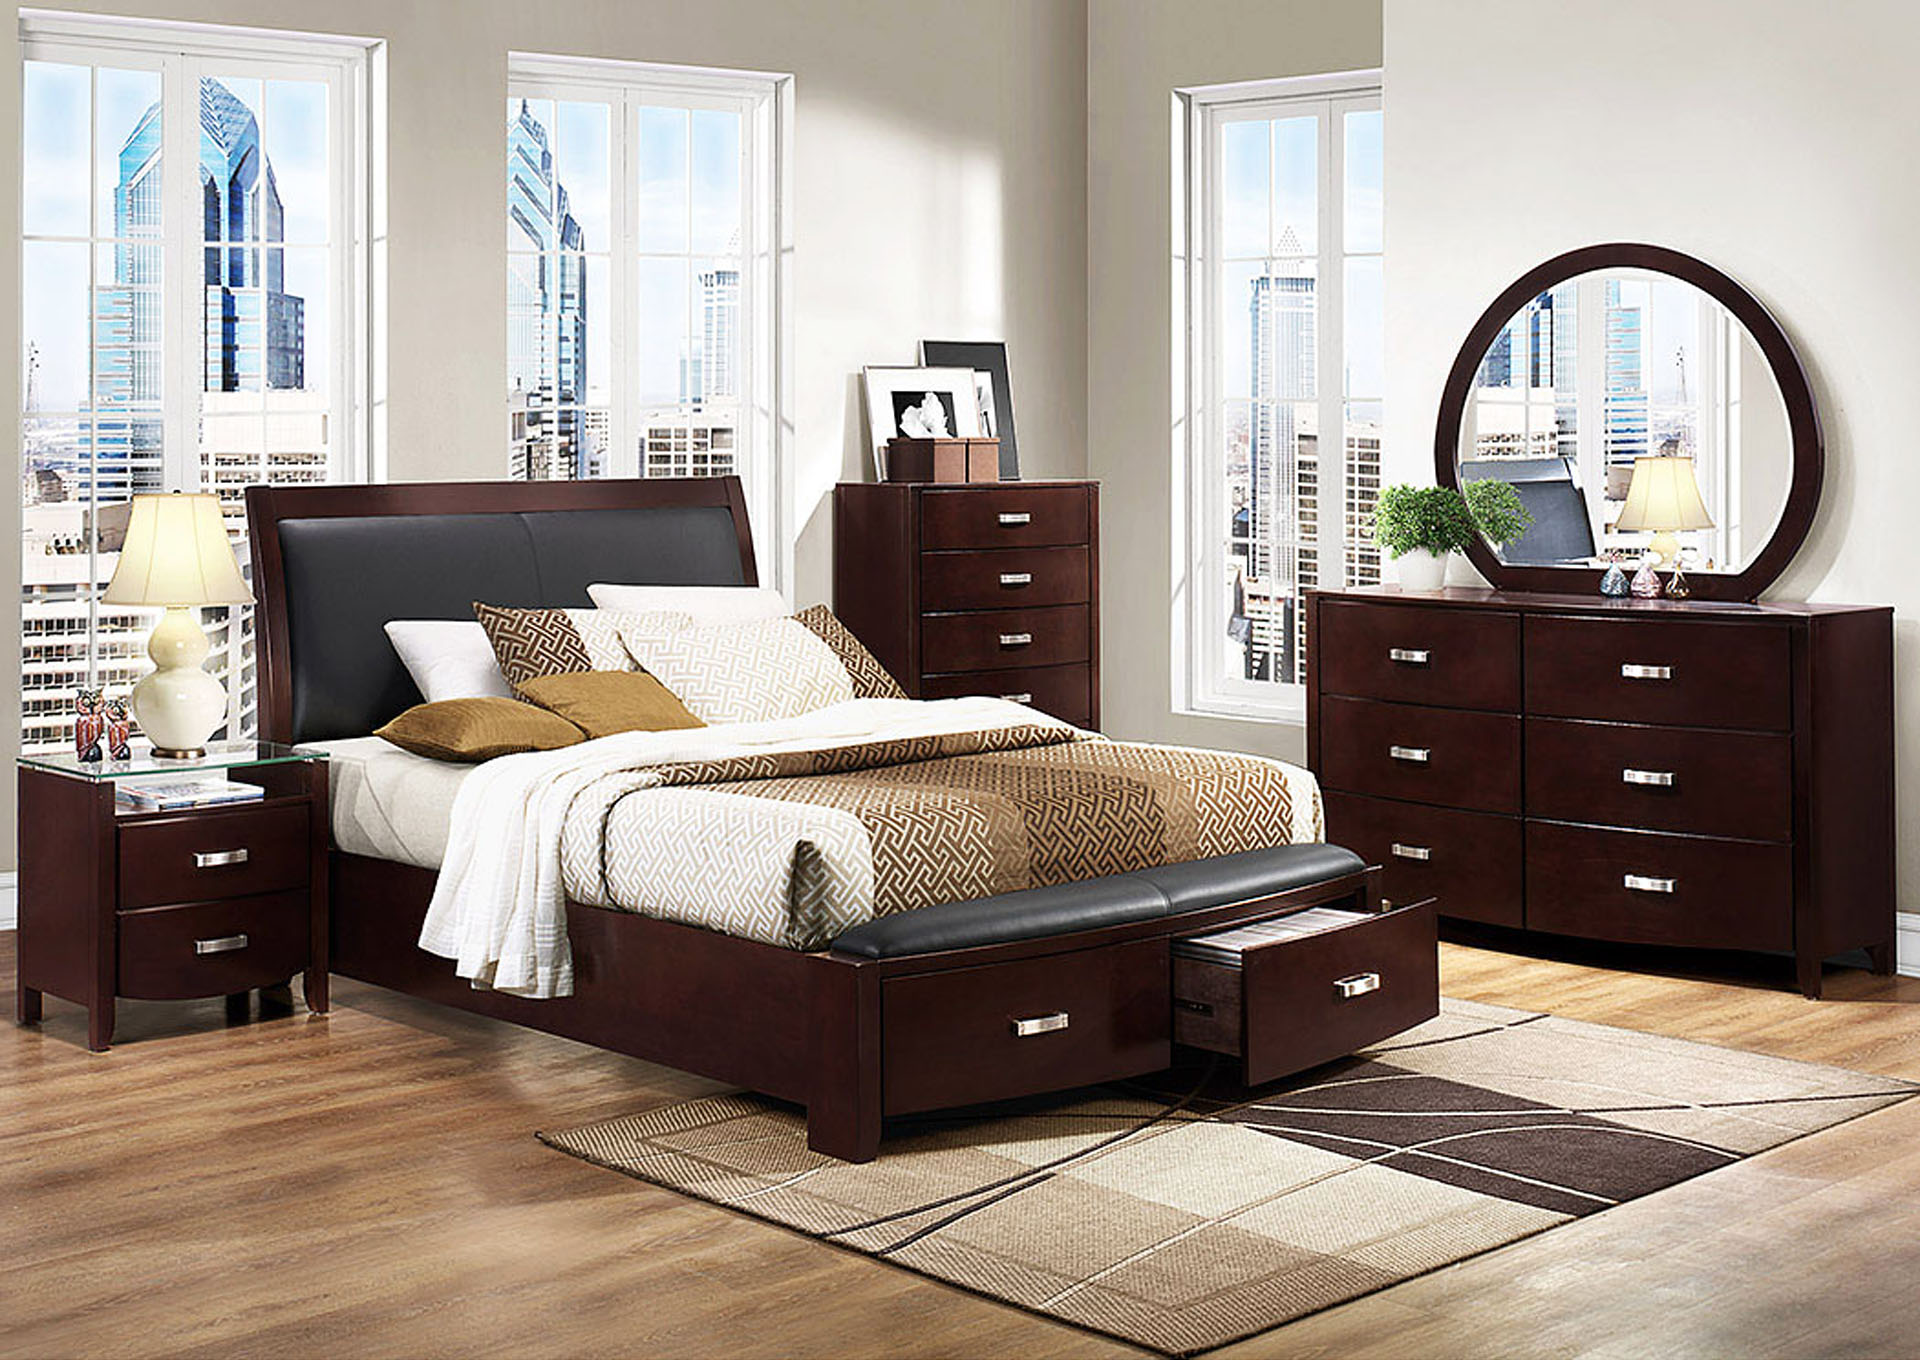 Lyric Dark Espresso Eastern King Bed w/ Front Bed Storages,Homelegance